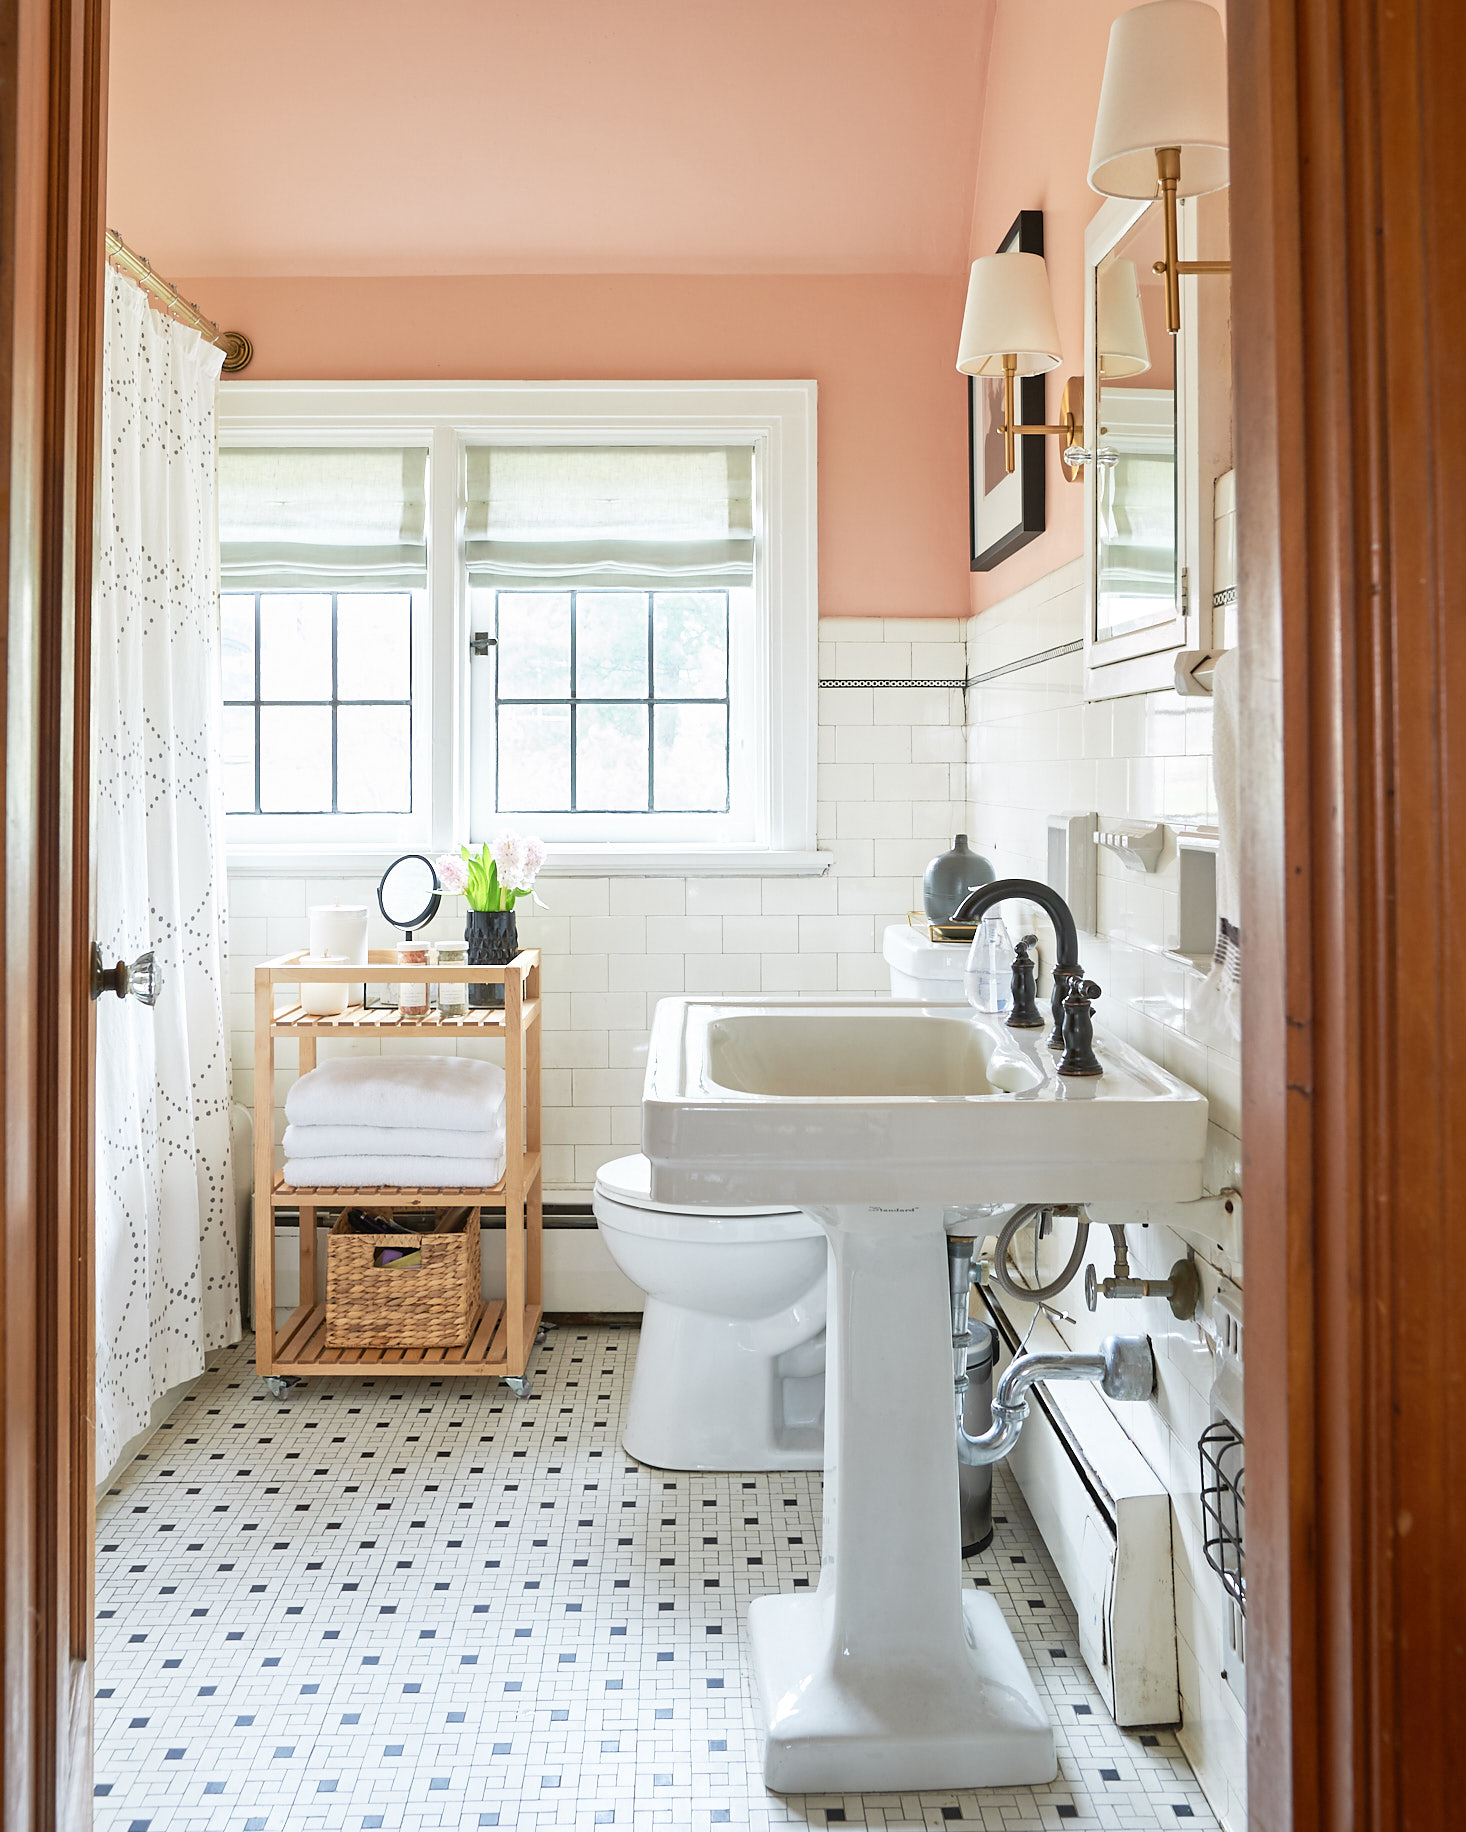 Blush bathroom with linen roman shades and classic tile